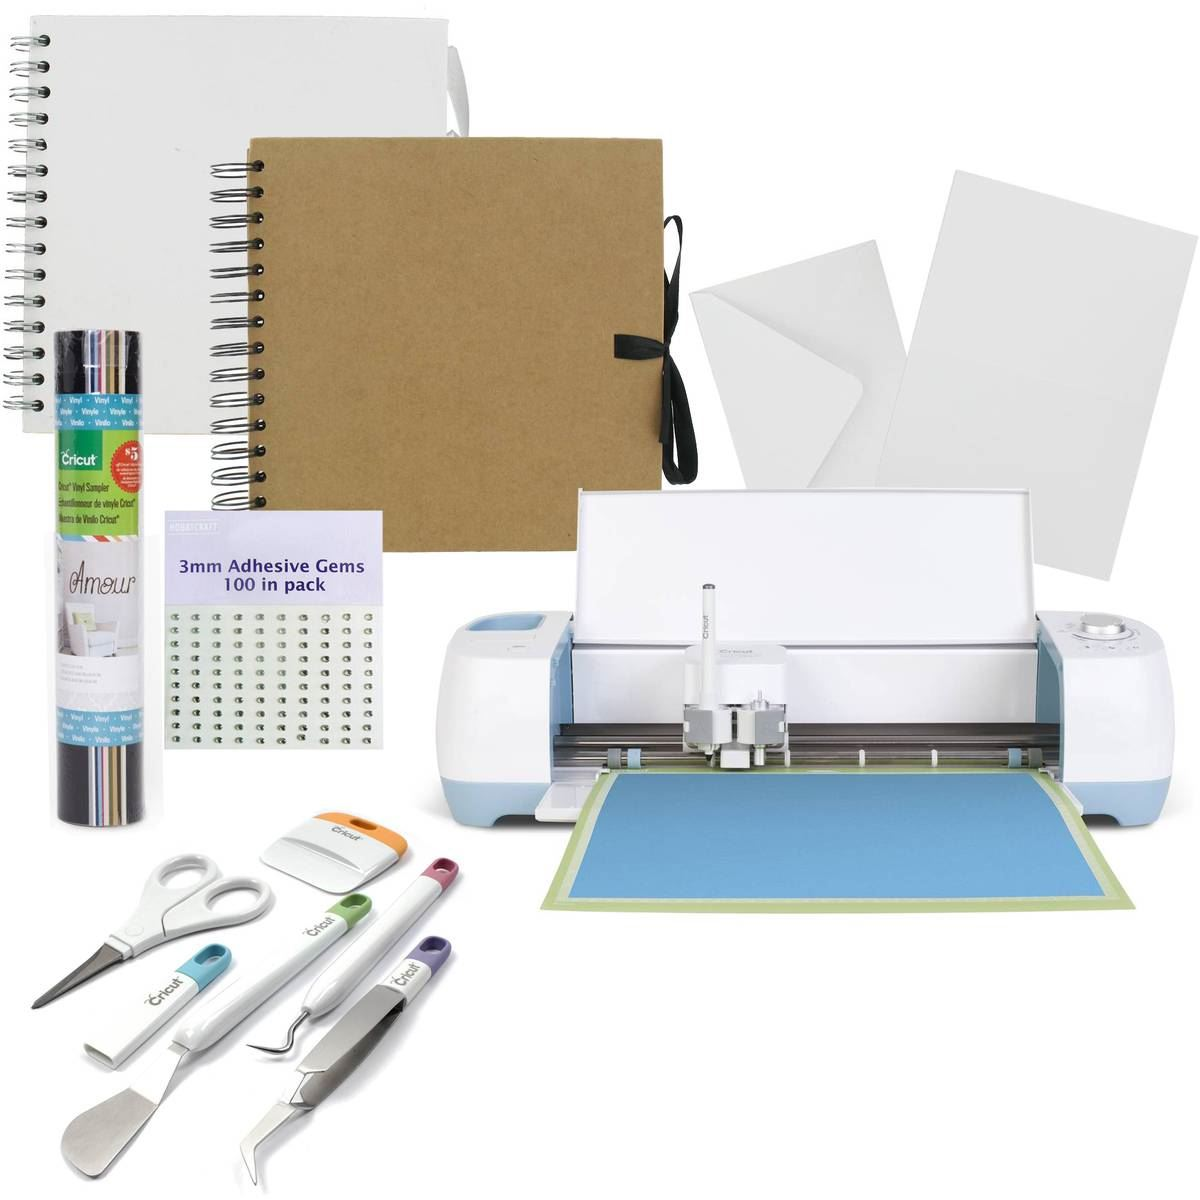 cricut explore air die cutting machine